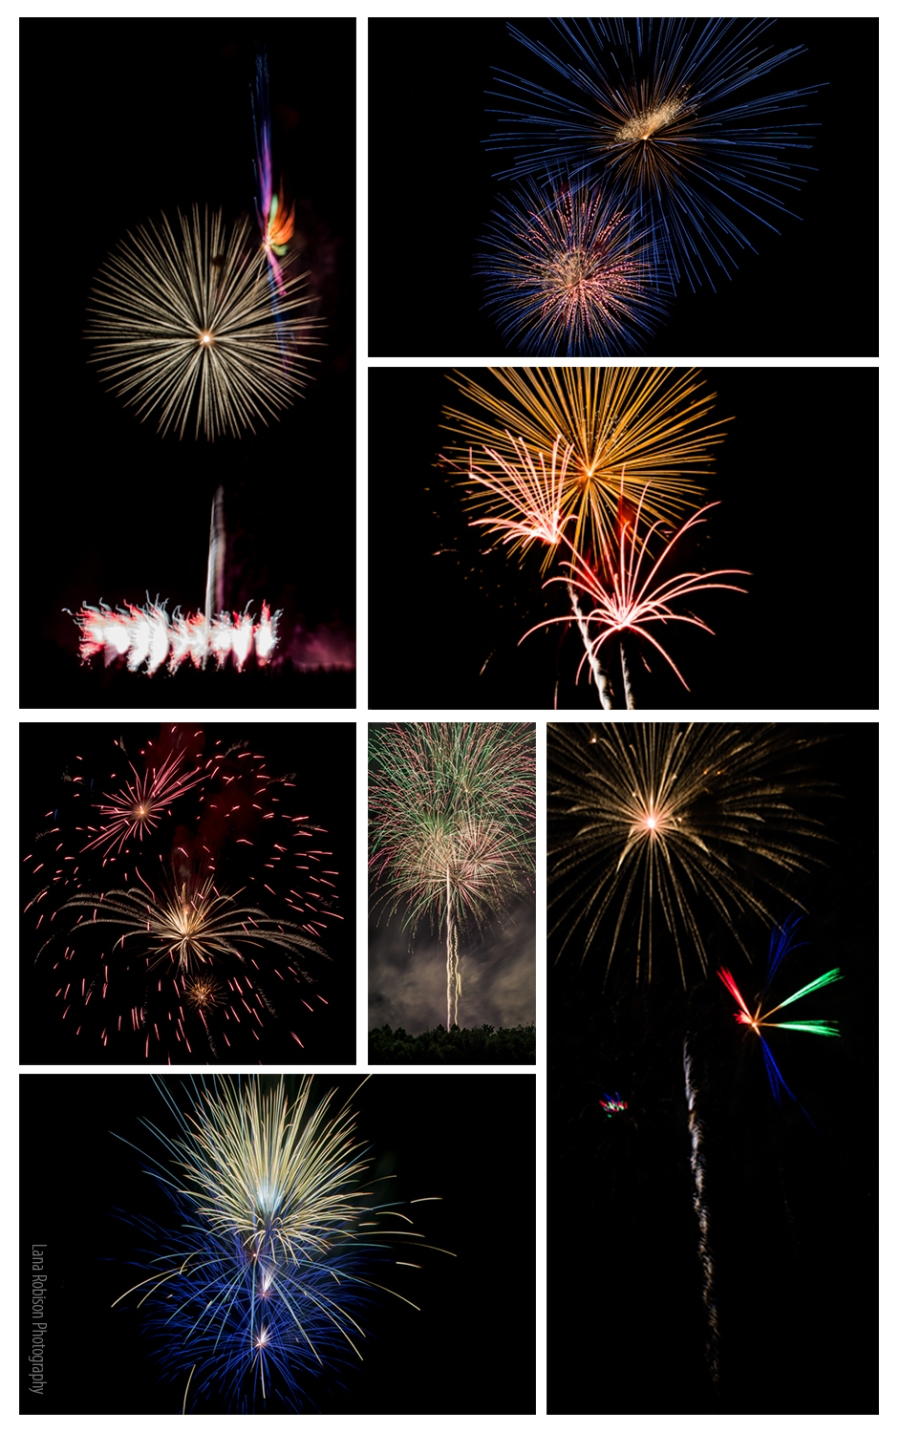 2015 fireworks collage